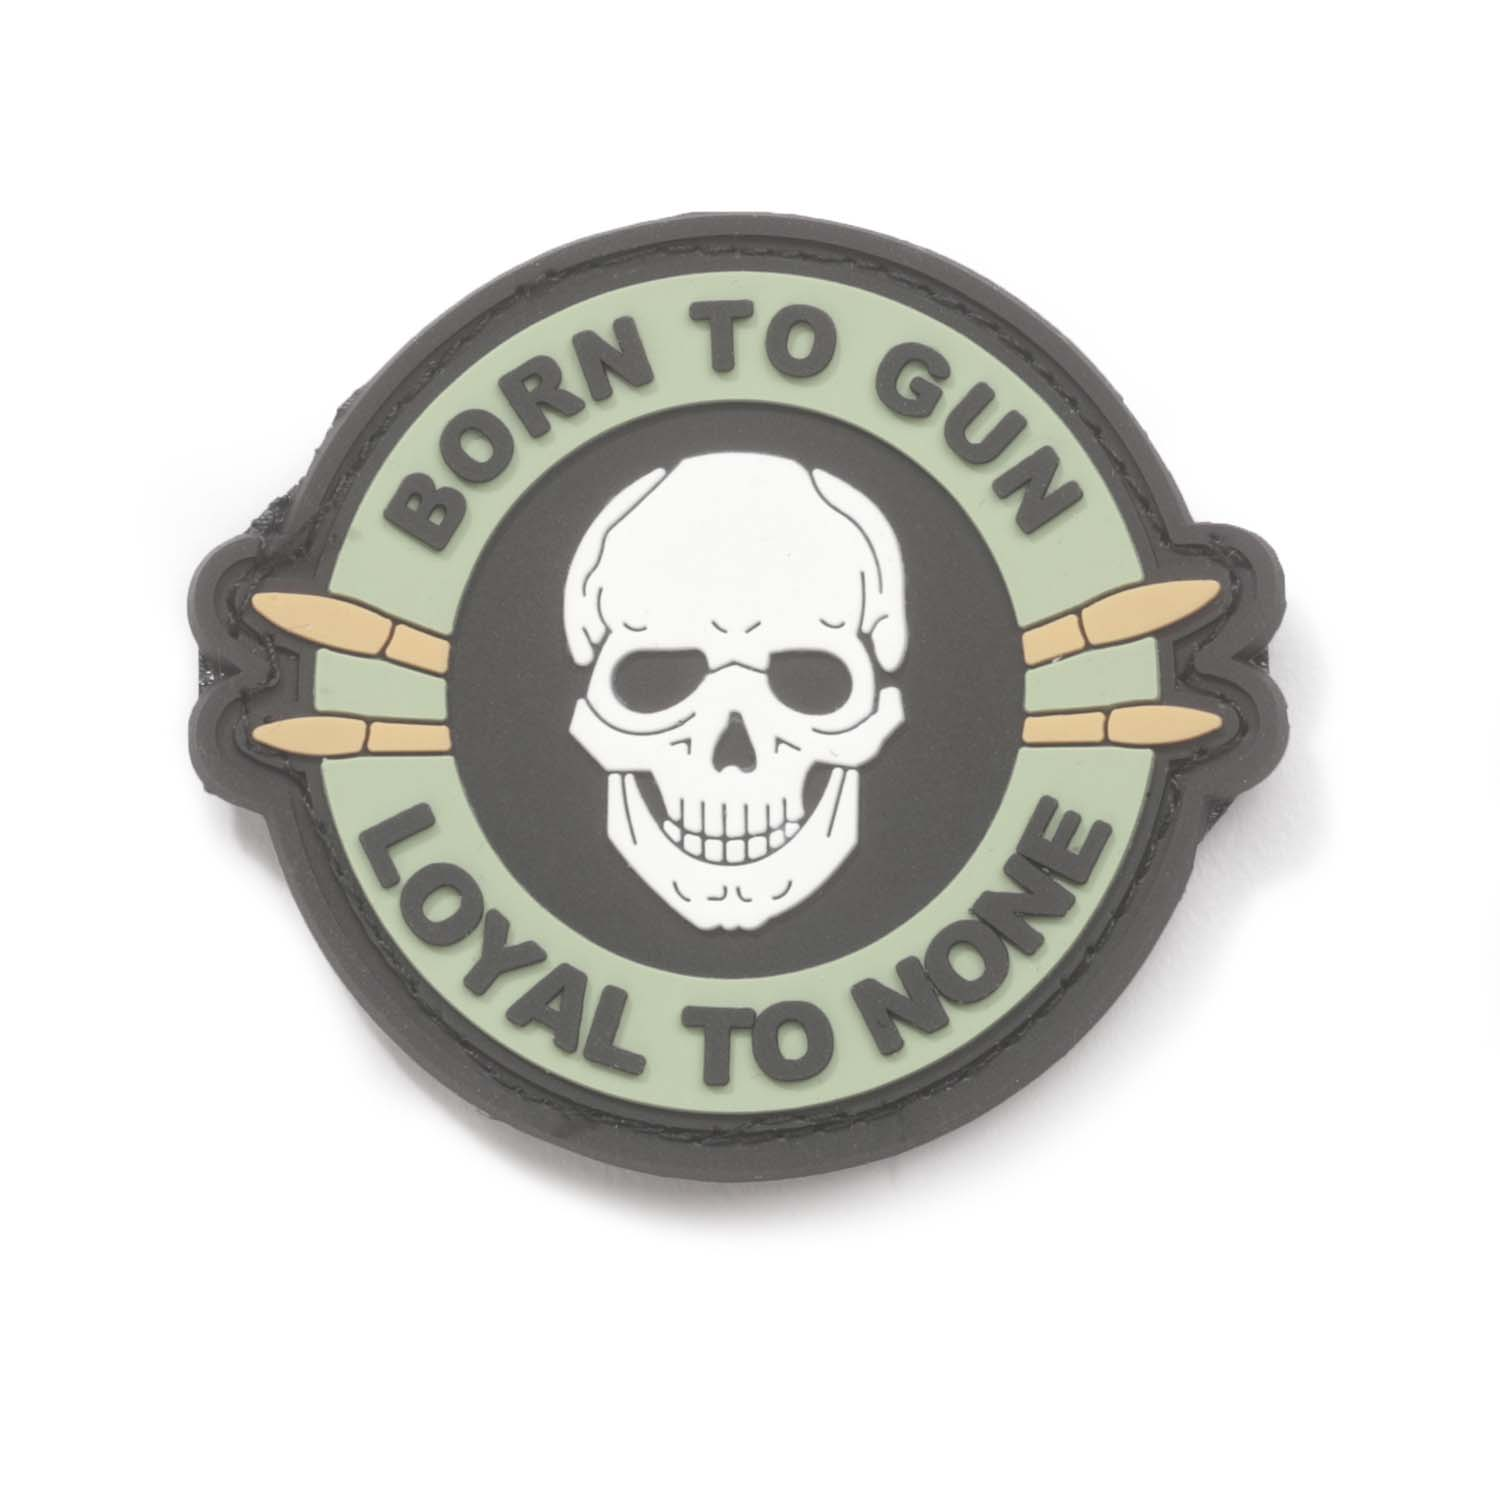 """Born to Gun, Loyal to None"" PVC Morale Patch"